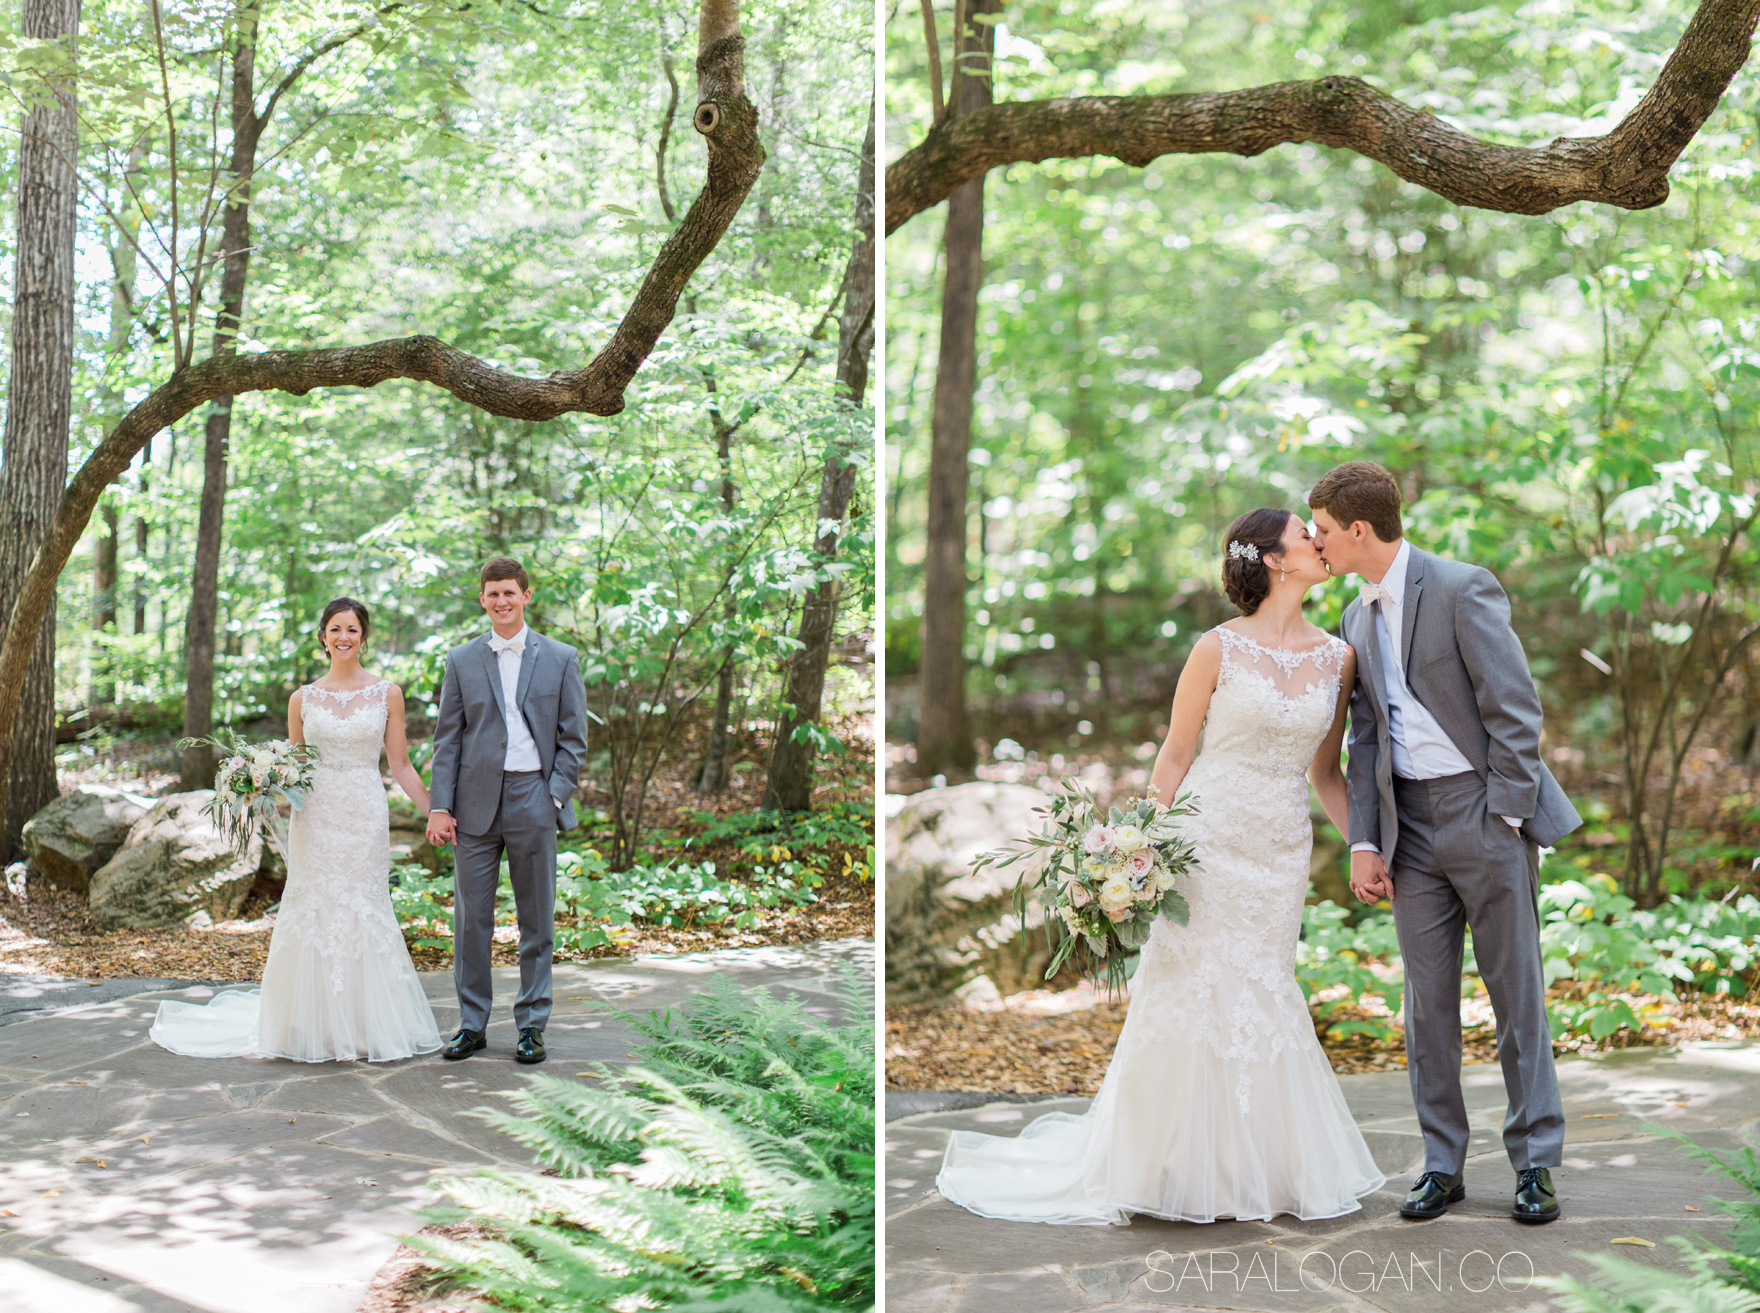 state botanical gardens wedding photos